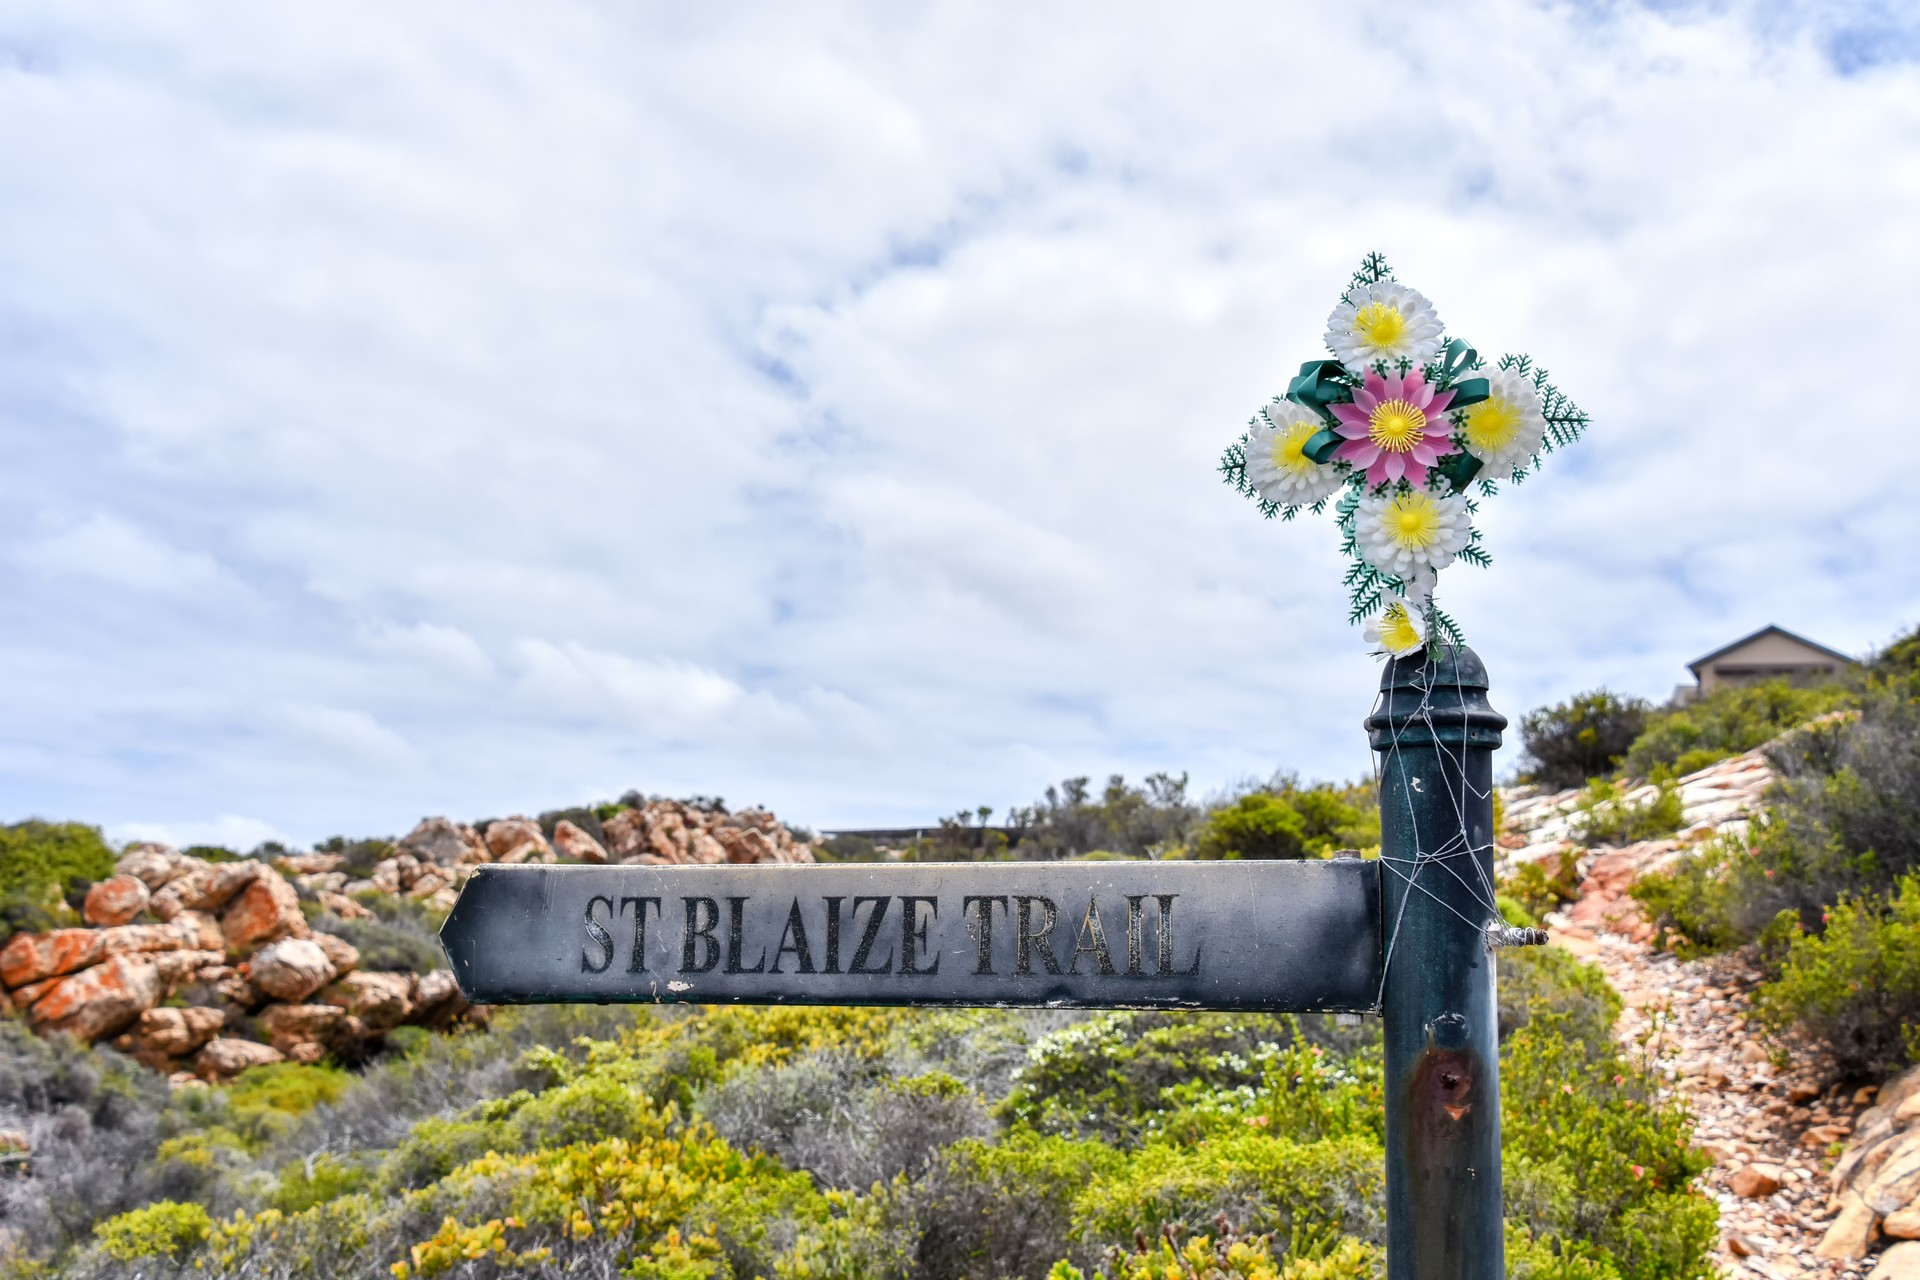 Starting point of the St Blaize Trail along South Africa's Garden Route